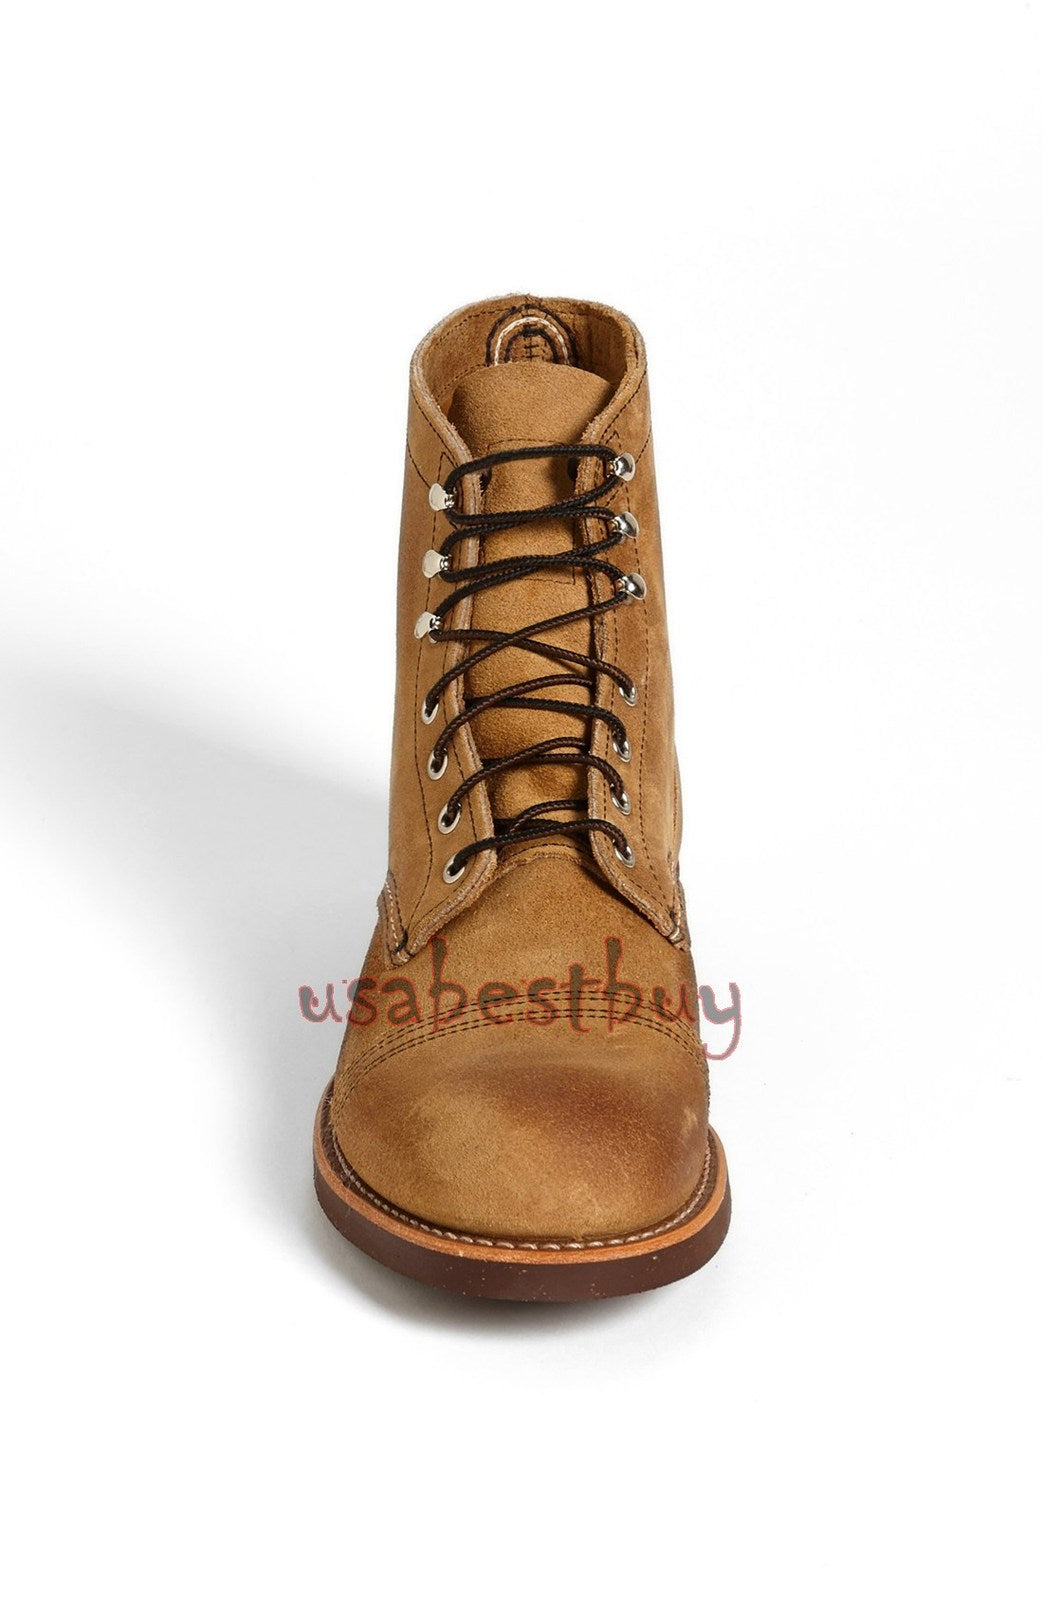 New Handmade Chukka Superb Style Suede Leather Boots, Men suede leather boots